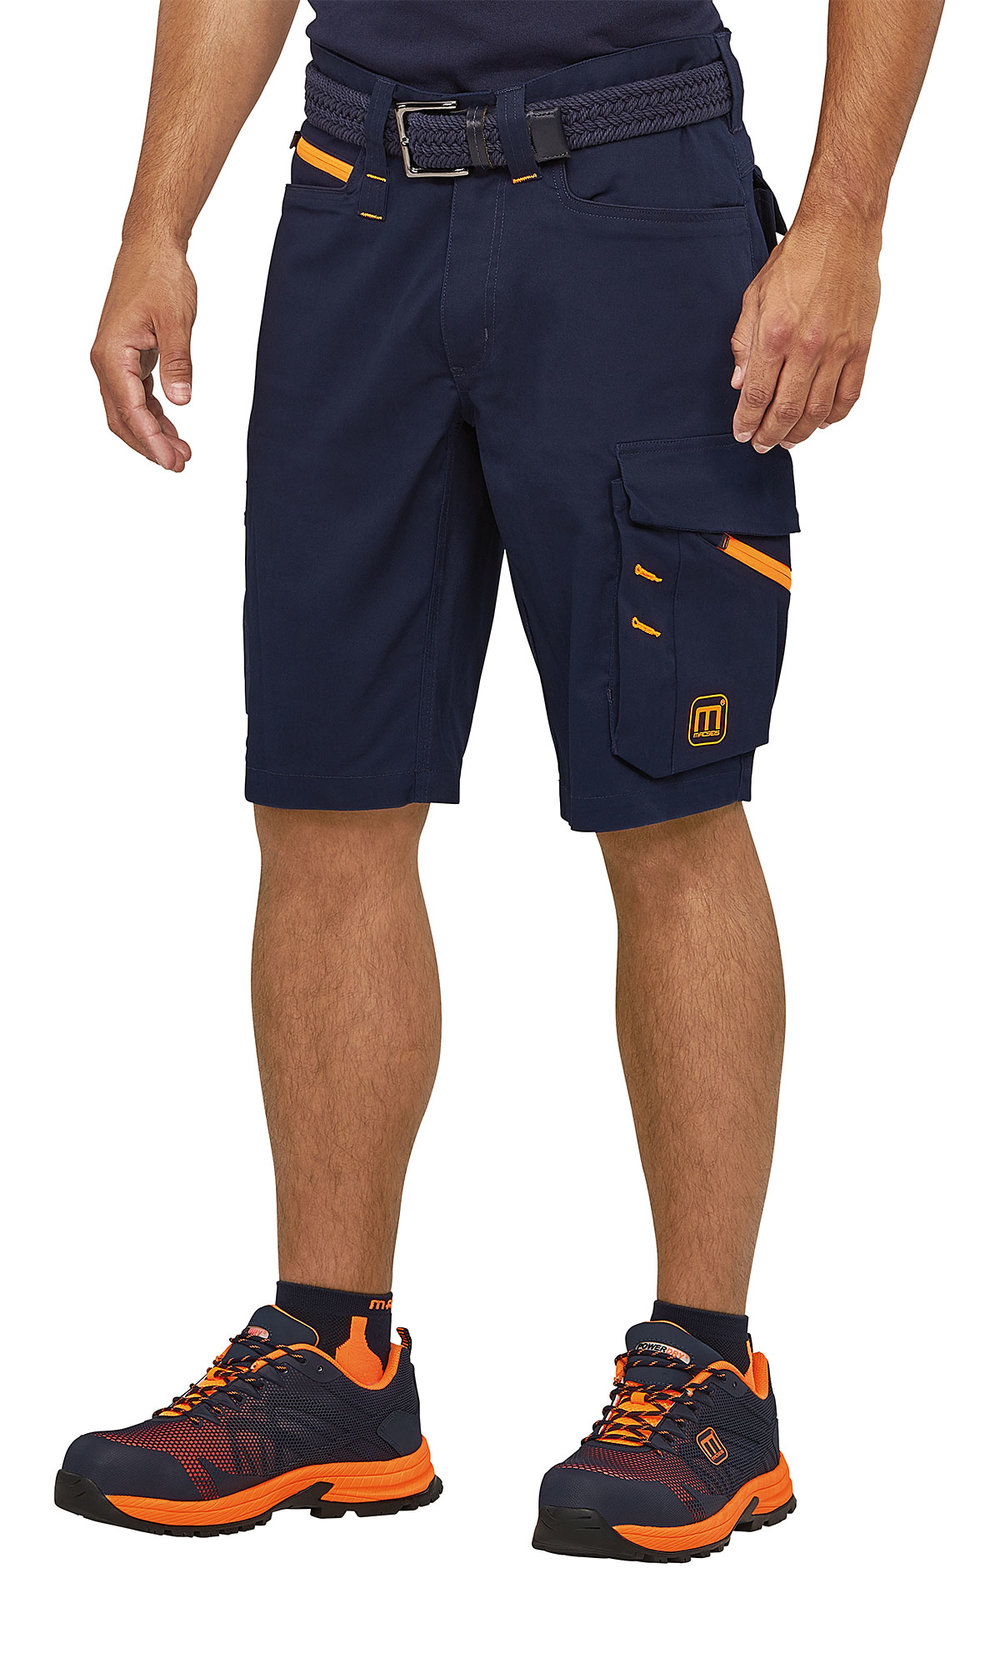 PRONEON FUNCTIONAL WORK SHORTS MALE MACBLUE